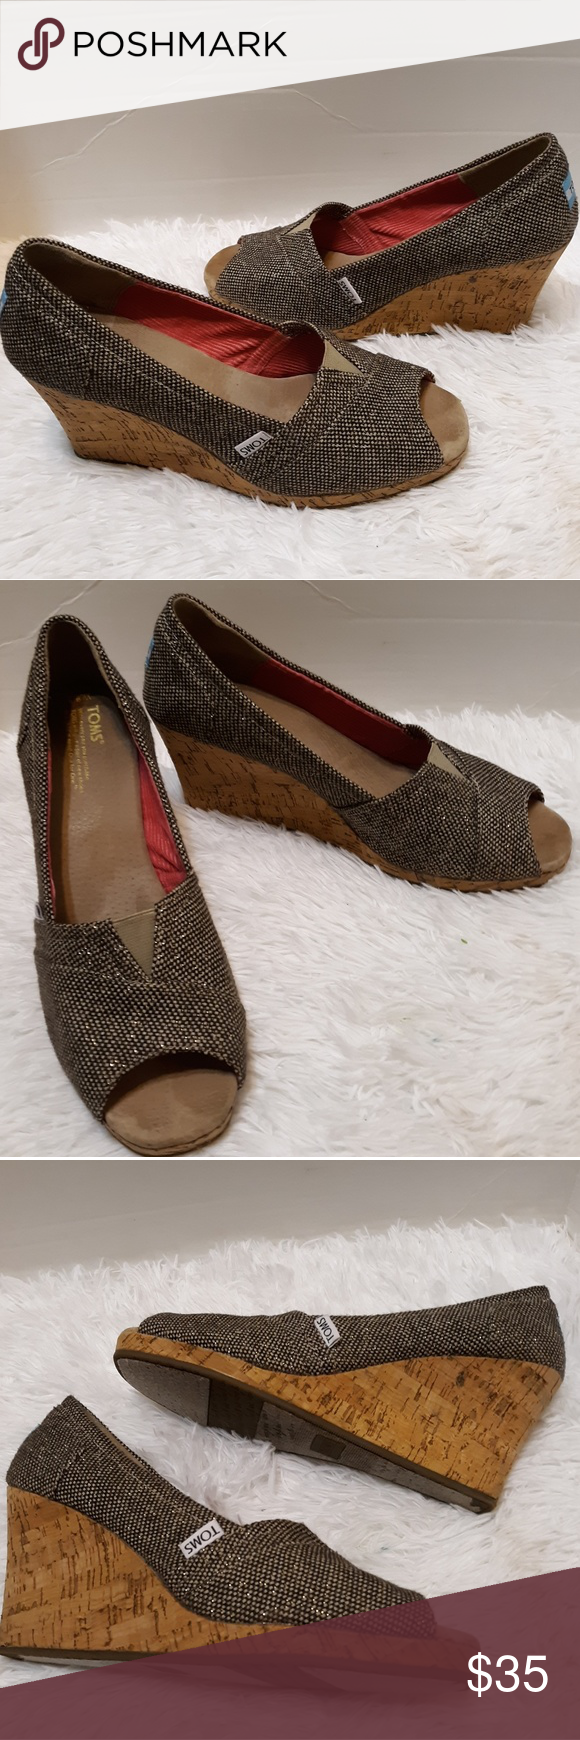 cd4aad34034 TOMS Stella wedge heels. Black tan and gold These are in great condition.  Minor wear on the bottom. They have only been worn a handful of times.